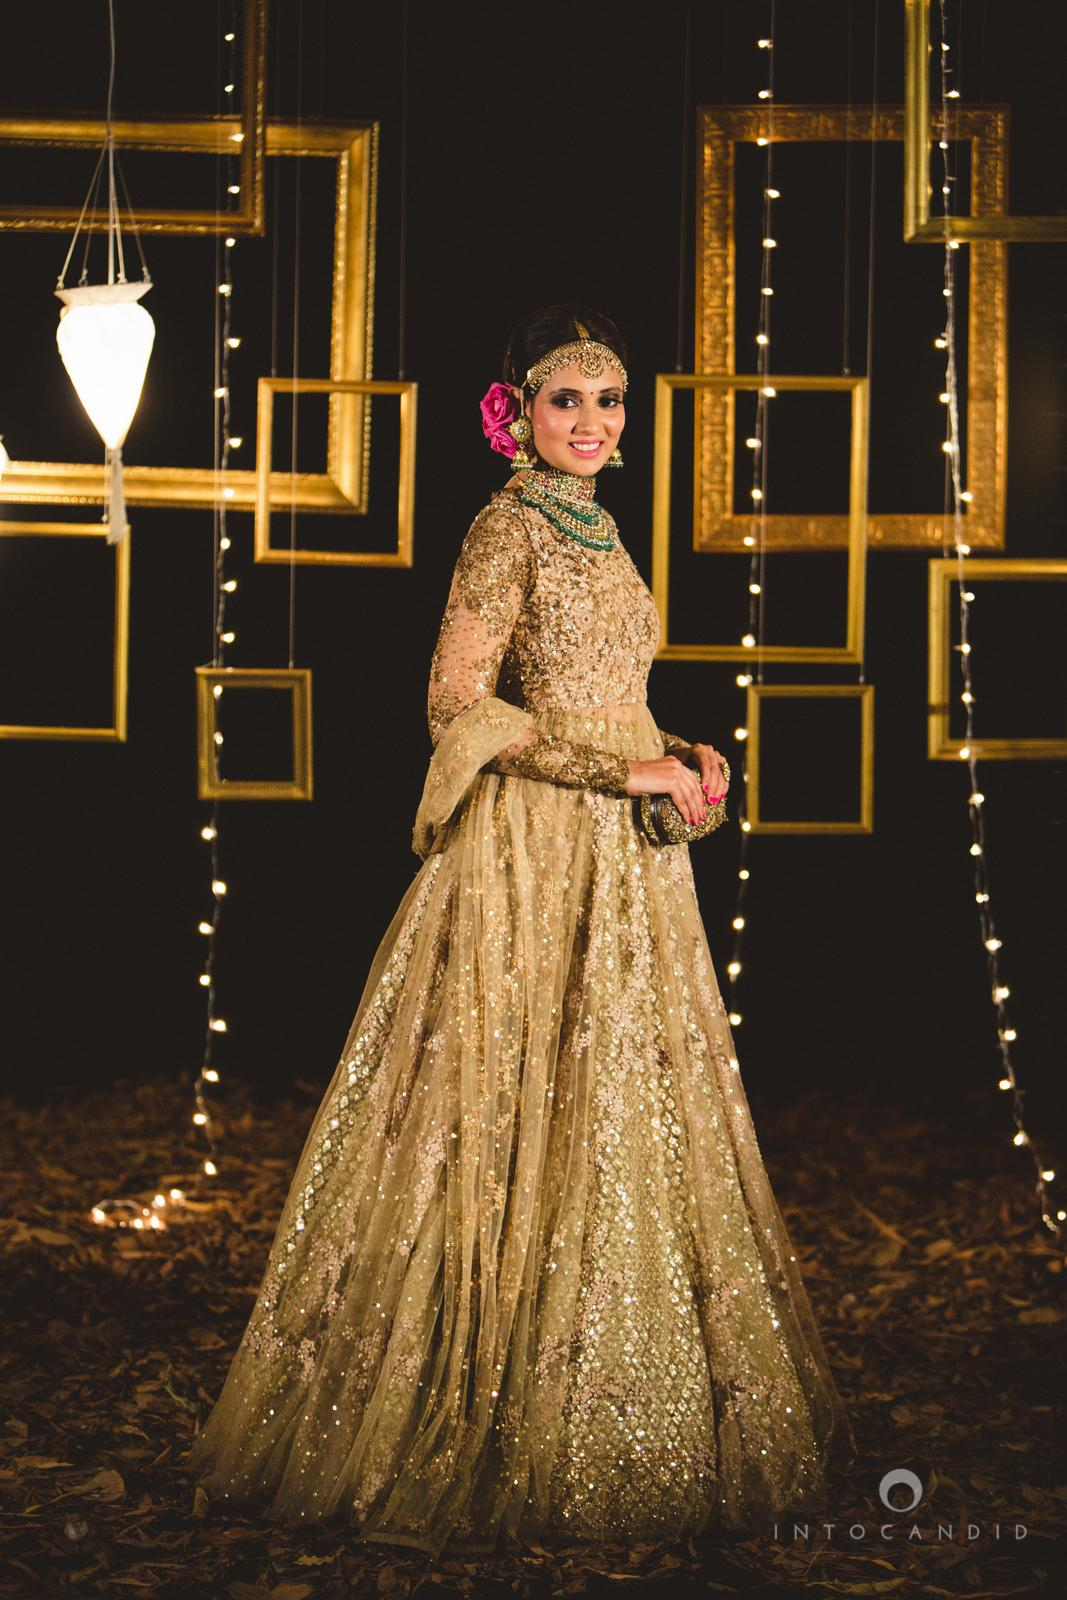 5 Style Lessons From An All Gold Band Baaja Bride Episode